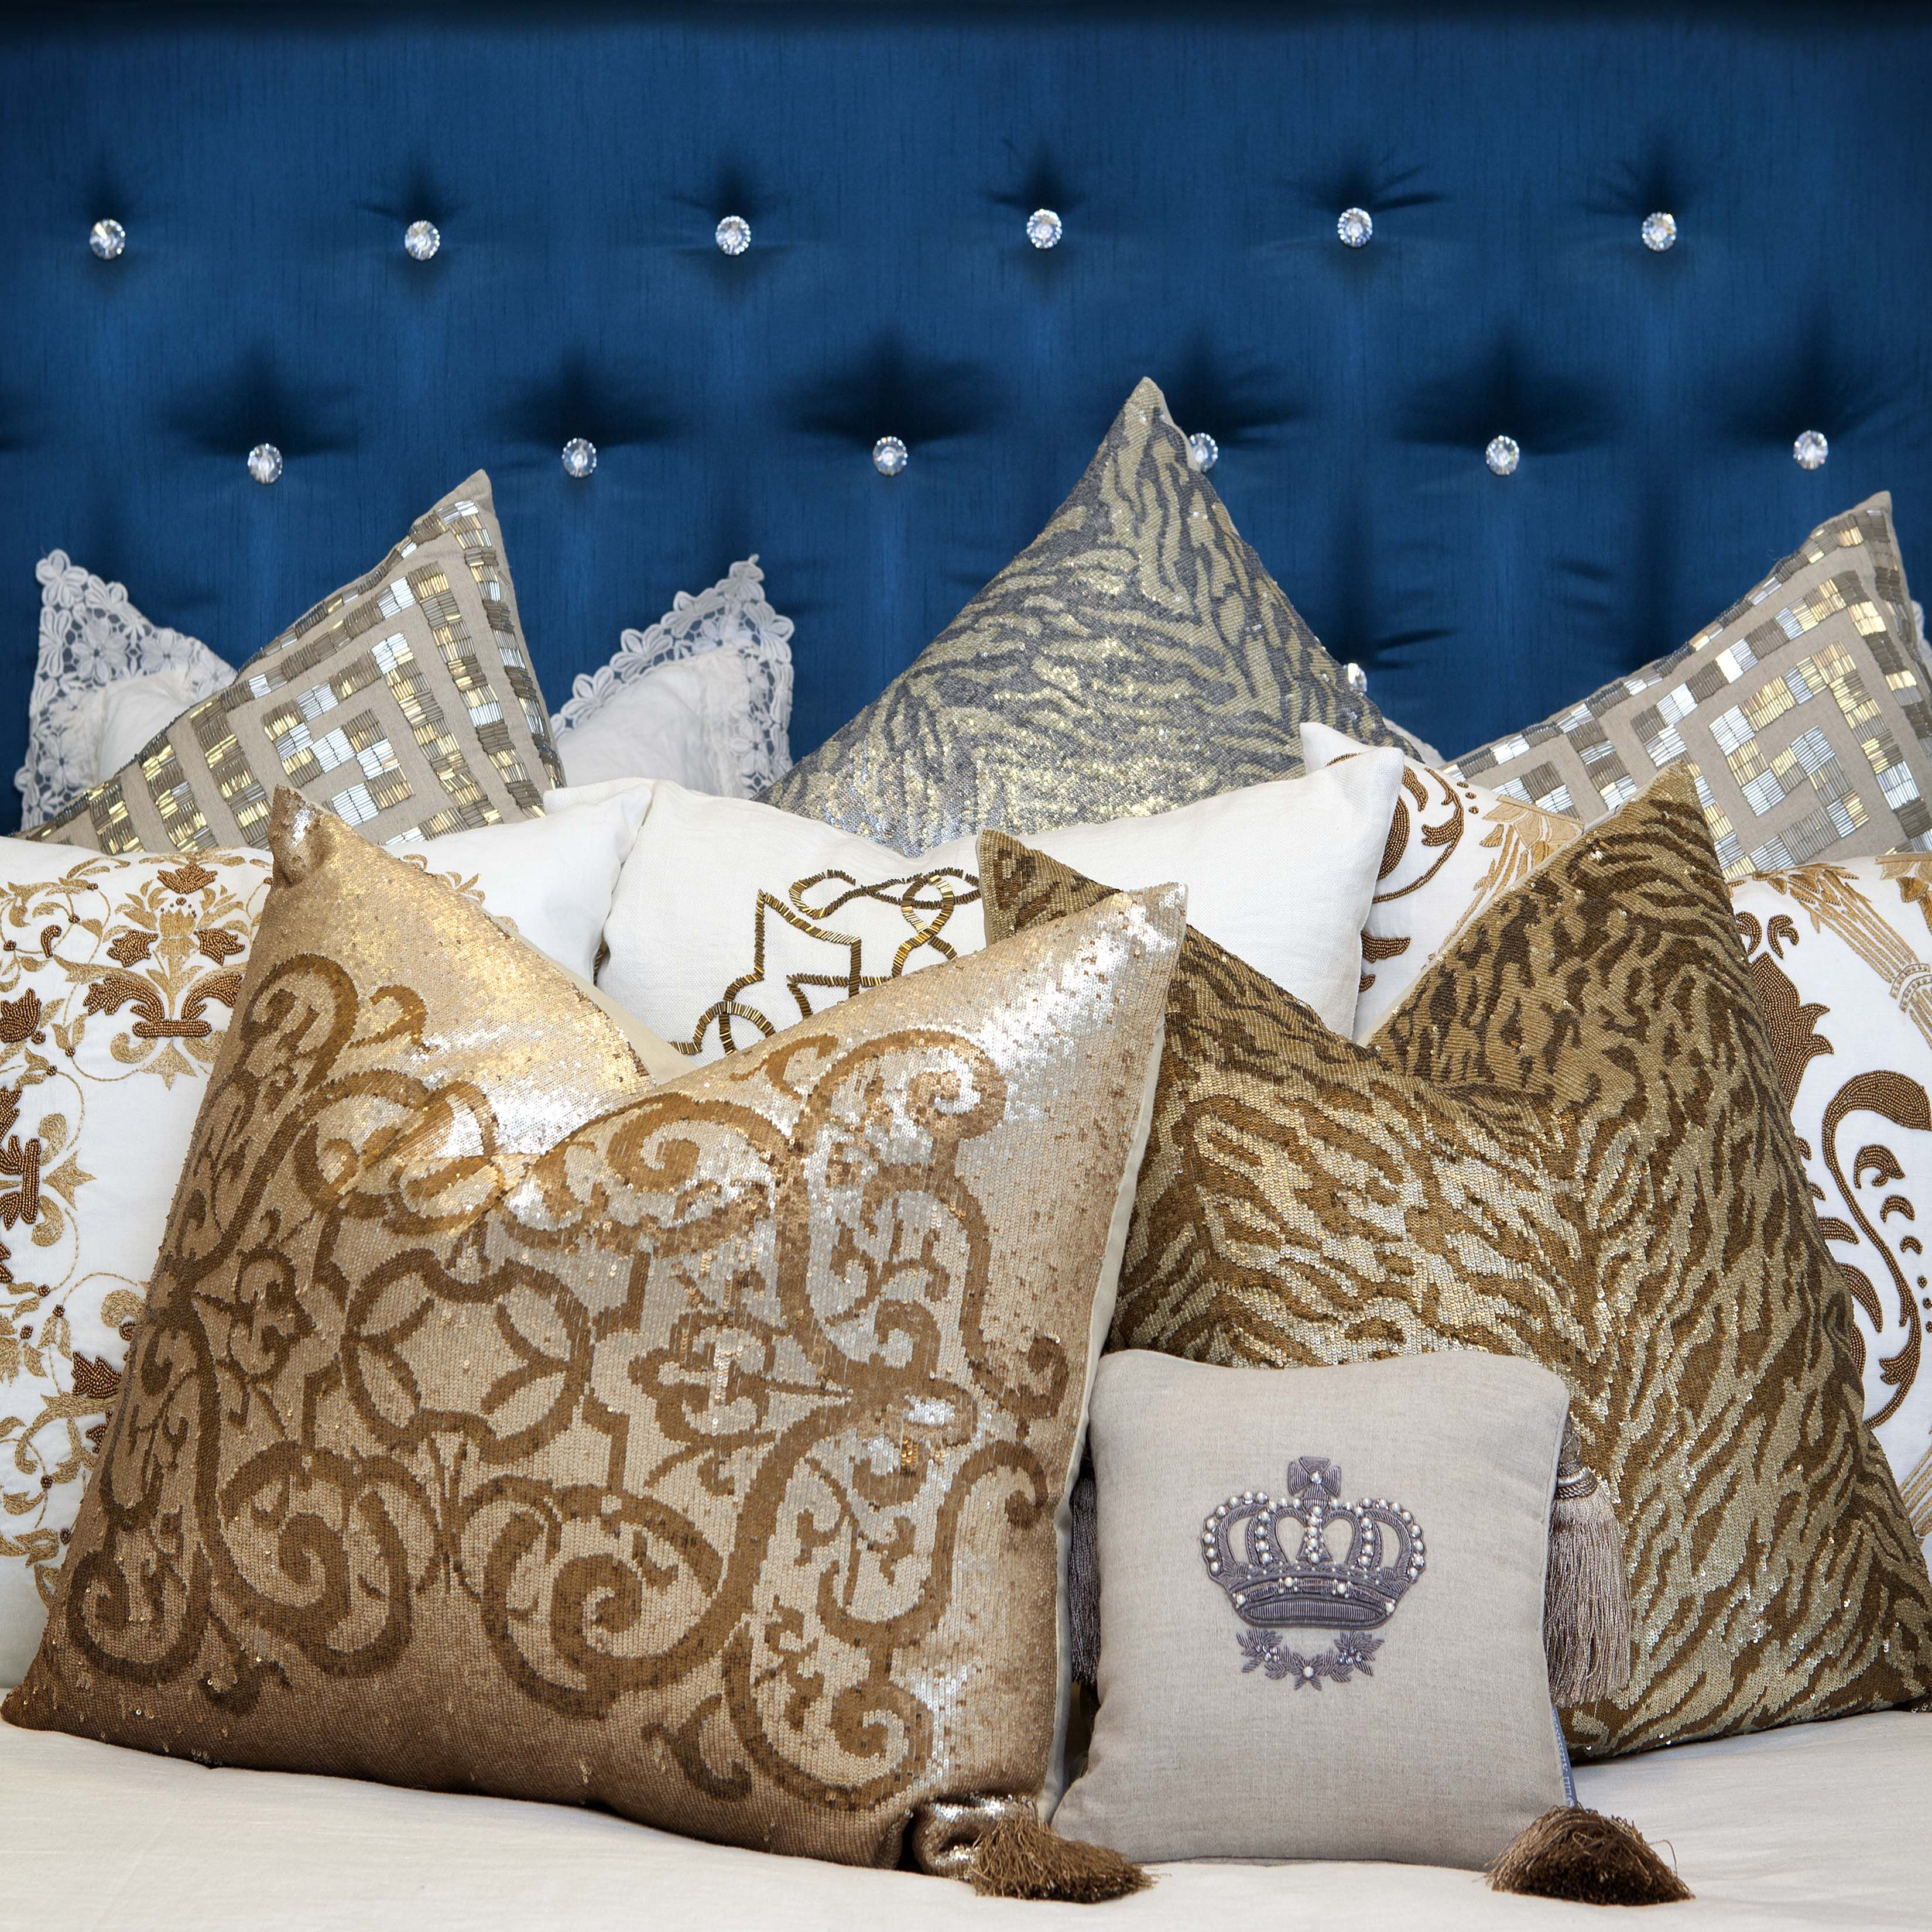 At La Maison Interiors, you'll find a variety of throw pillow options that luxuriously compliment any interior design plan